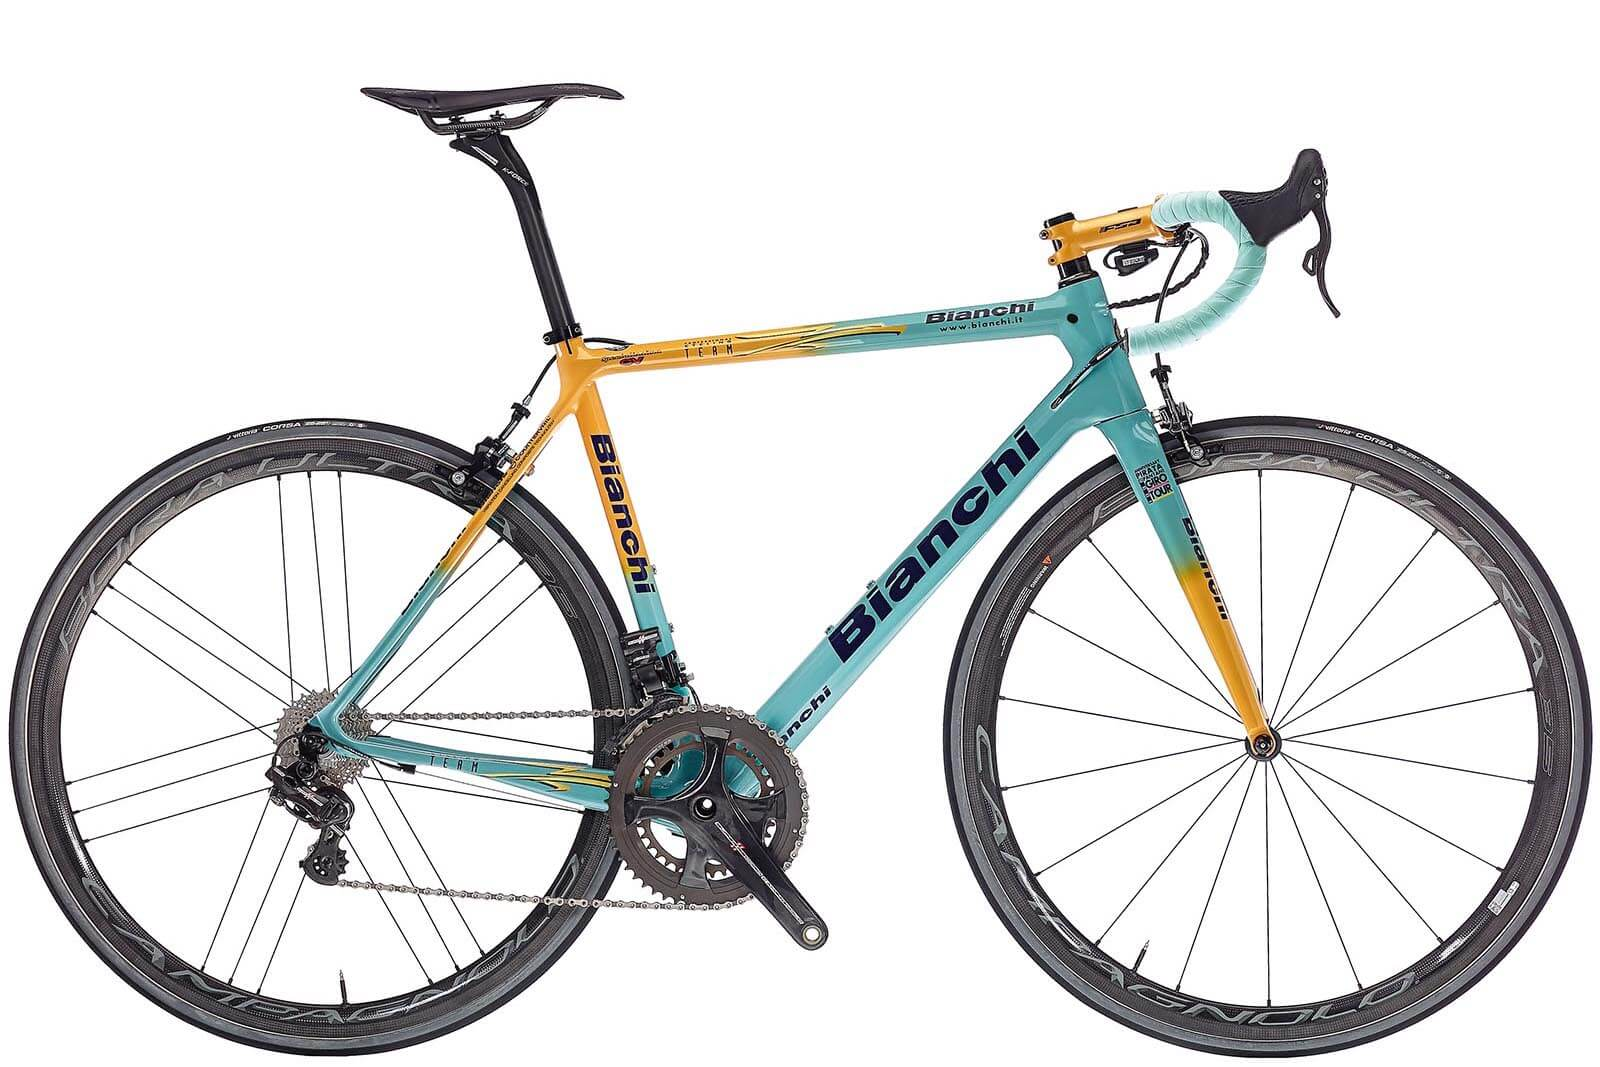 Das 2018er Bianchi Specialissima in der Marco Pantani Edition